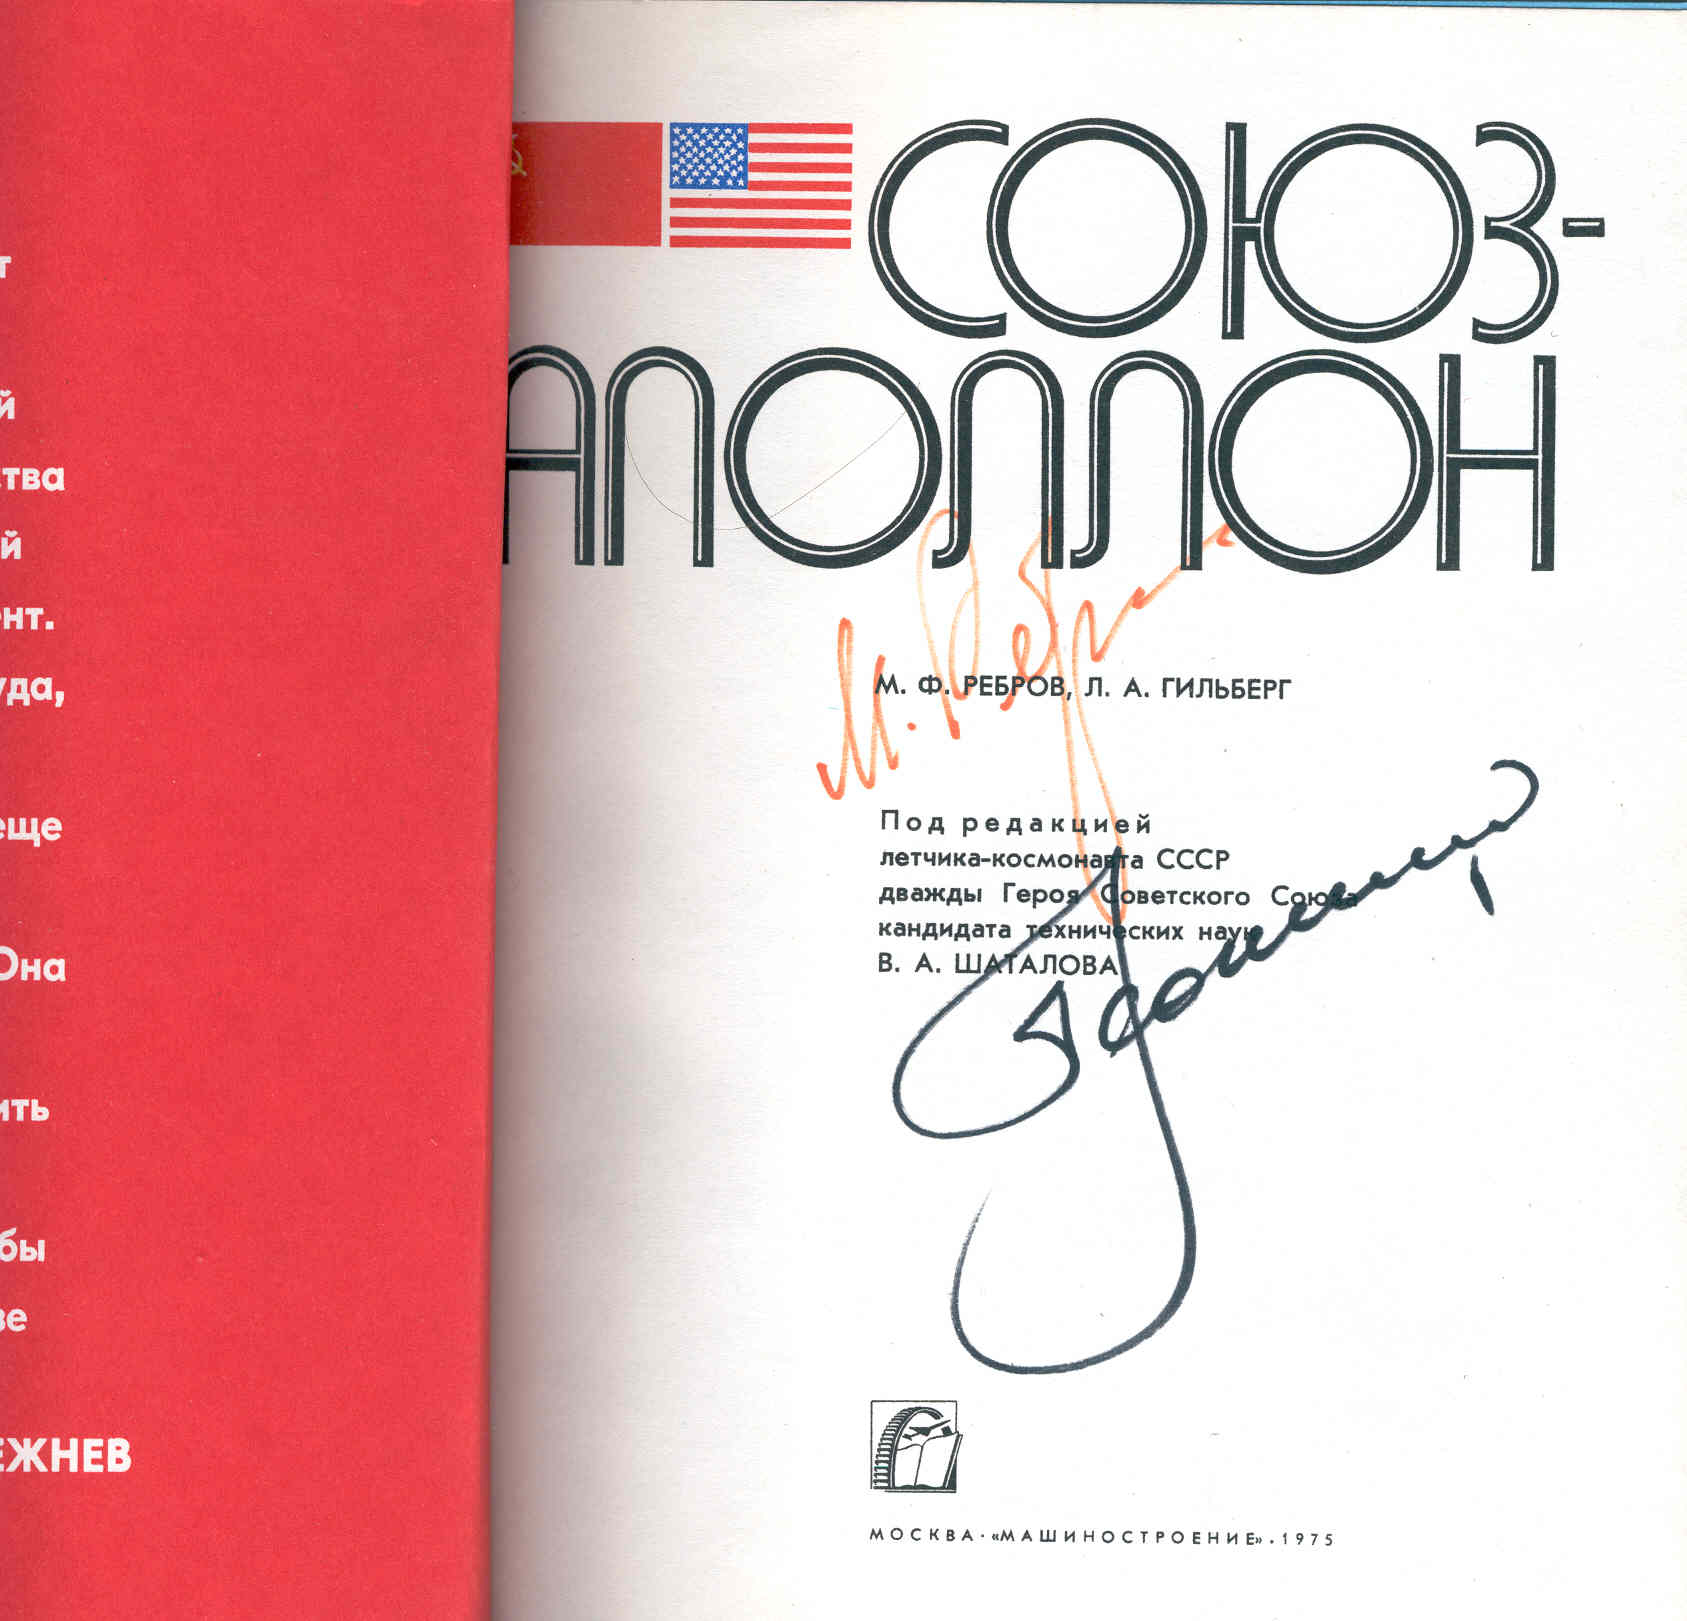 # cb101            Soyuz-Apollo book signed by Alexei Leonov and autor 2